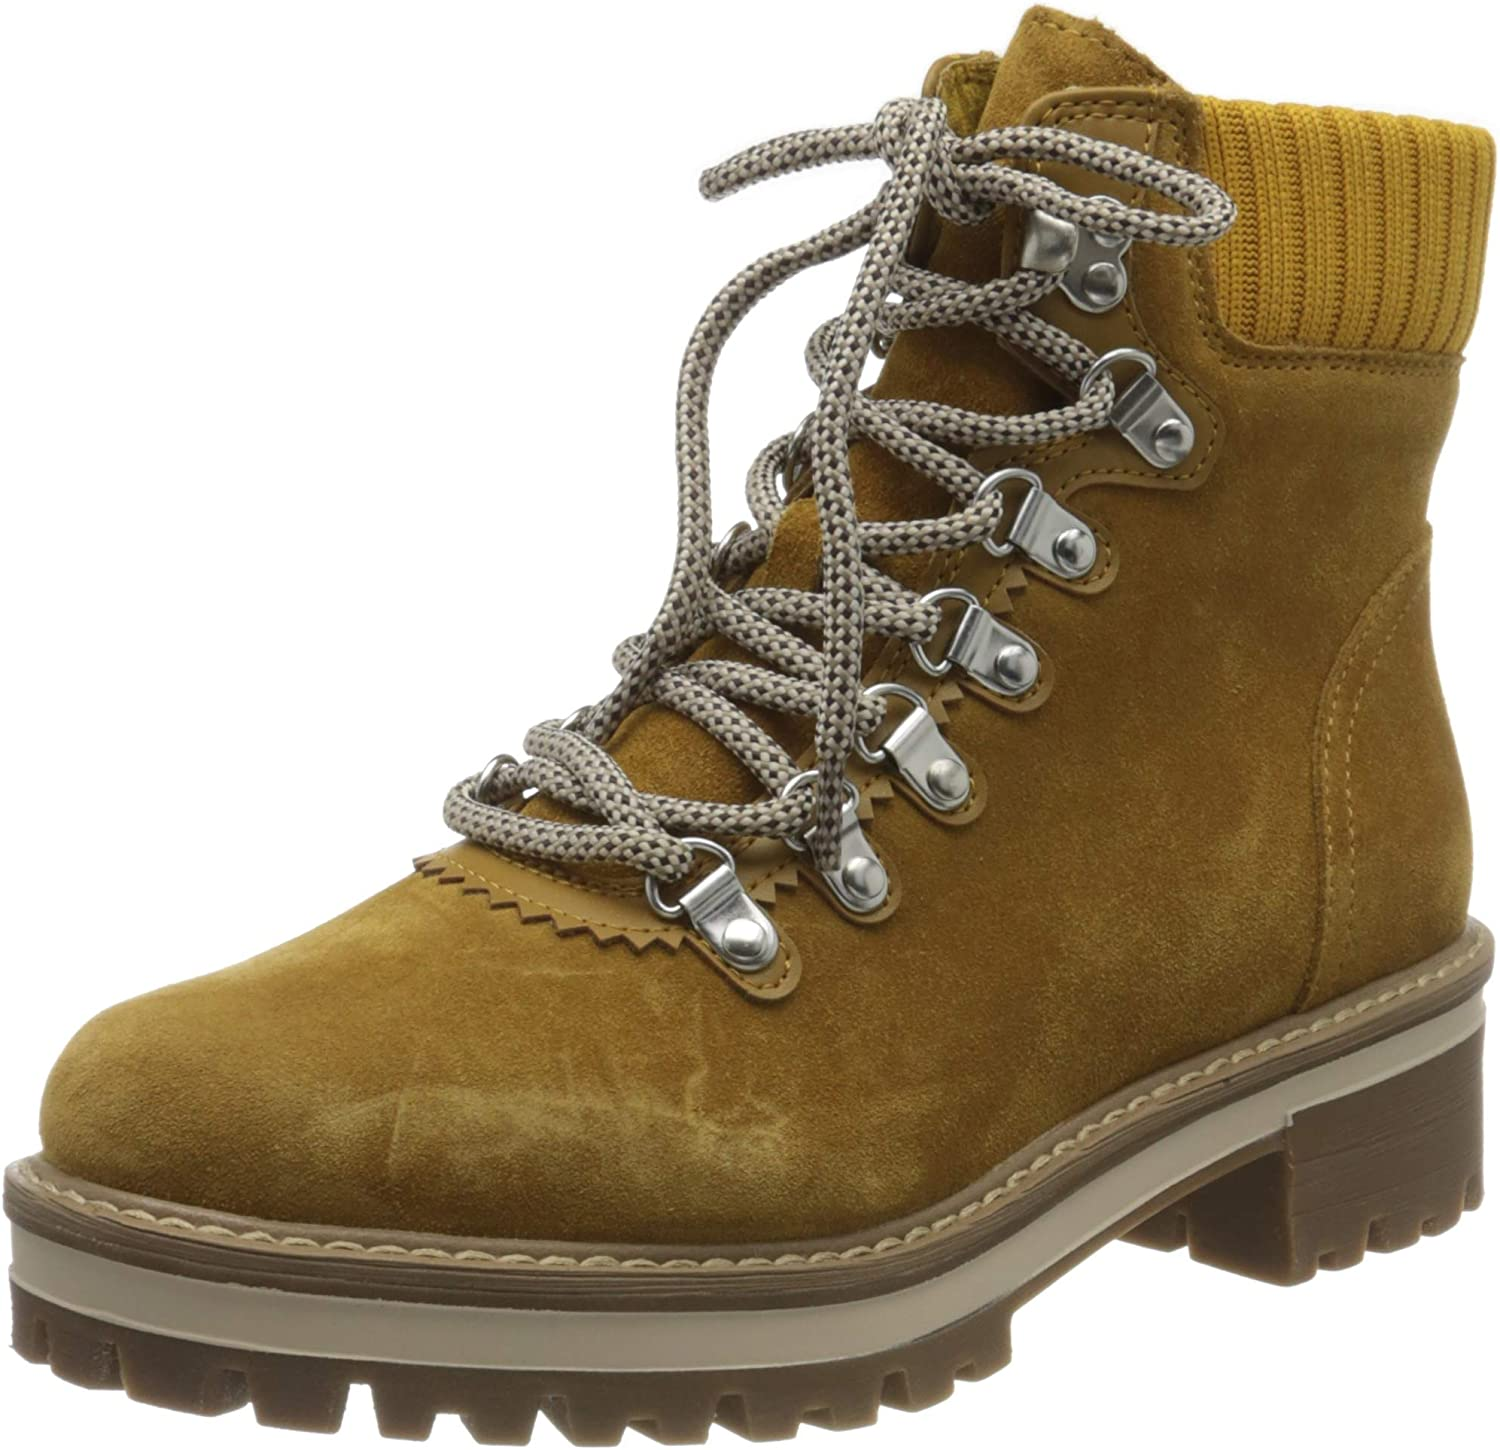 Tamaris Women's boots Ankle Max Tampa Mall 70% OFF